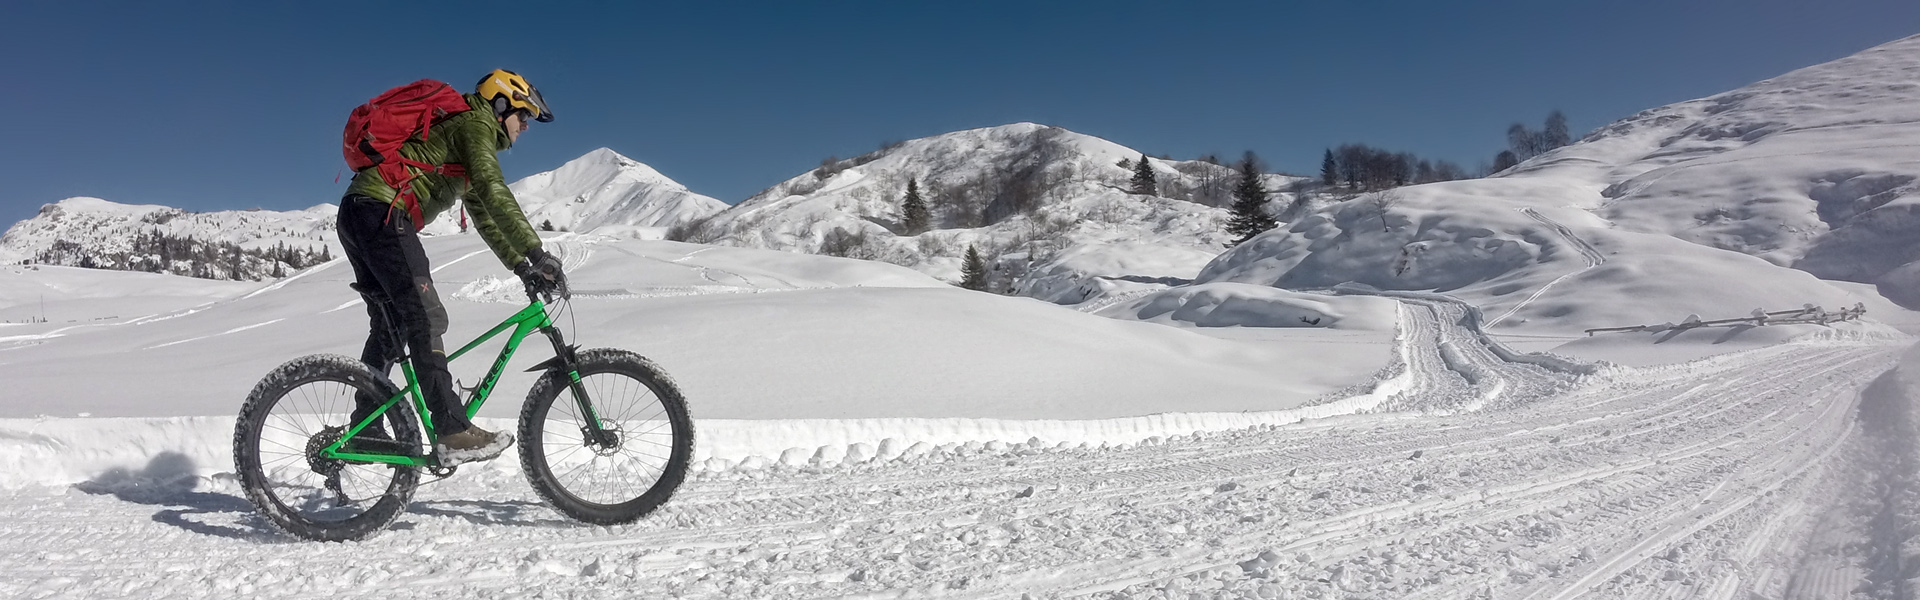 percorsi sentieristica fatbike fat bike